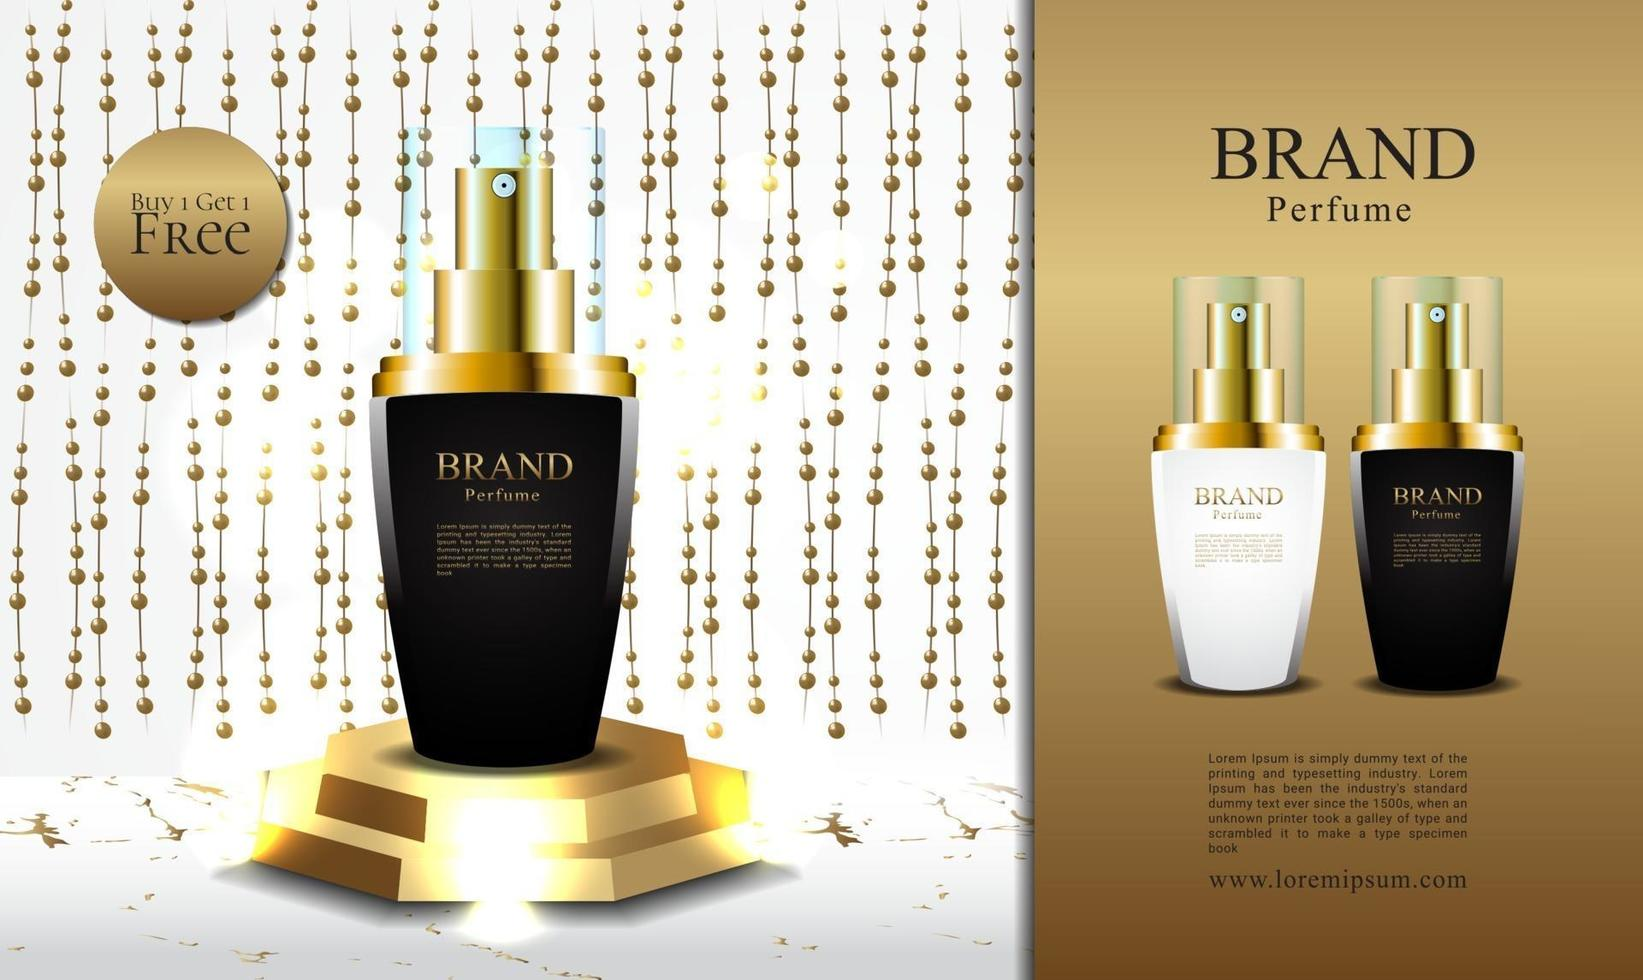 Banner luxury perfume promotion buy 1 get 1 with 3d packaging illustration vector